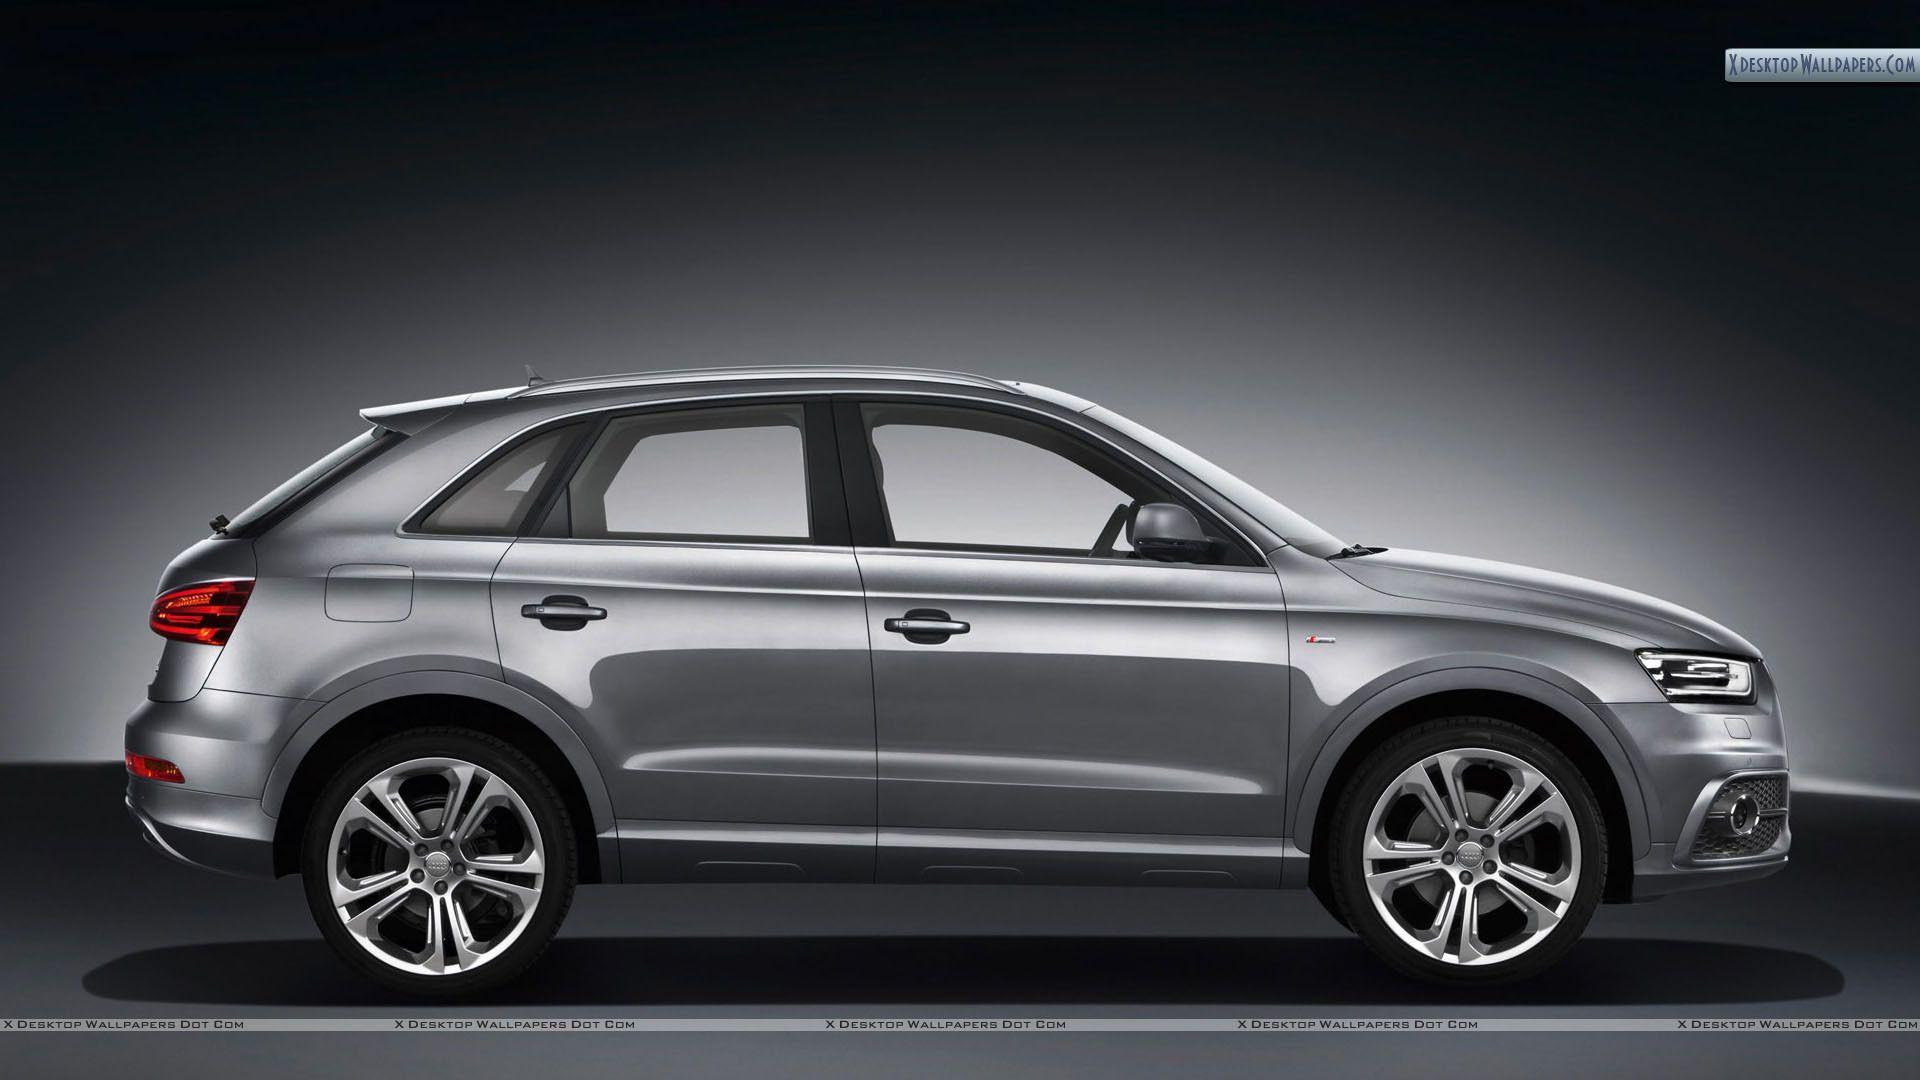 New car Audi q3 wallpapers and images - wallpapers, pictures, photos